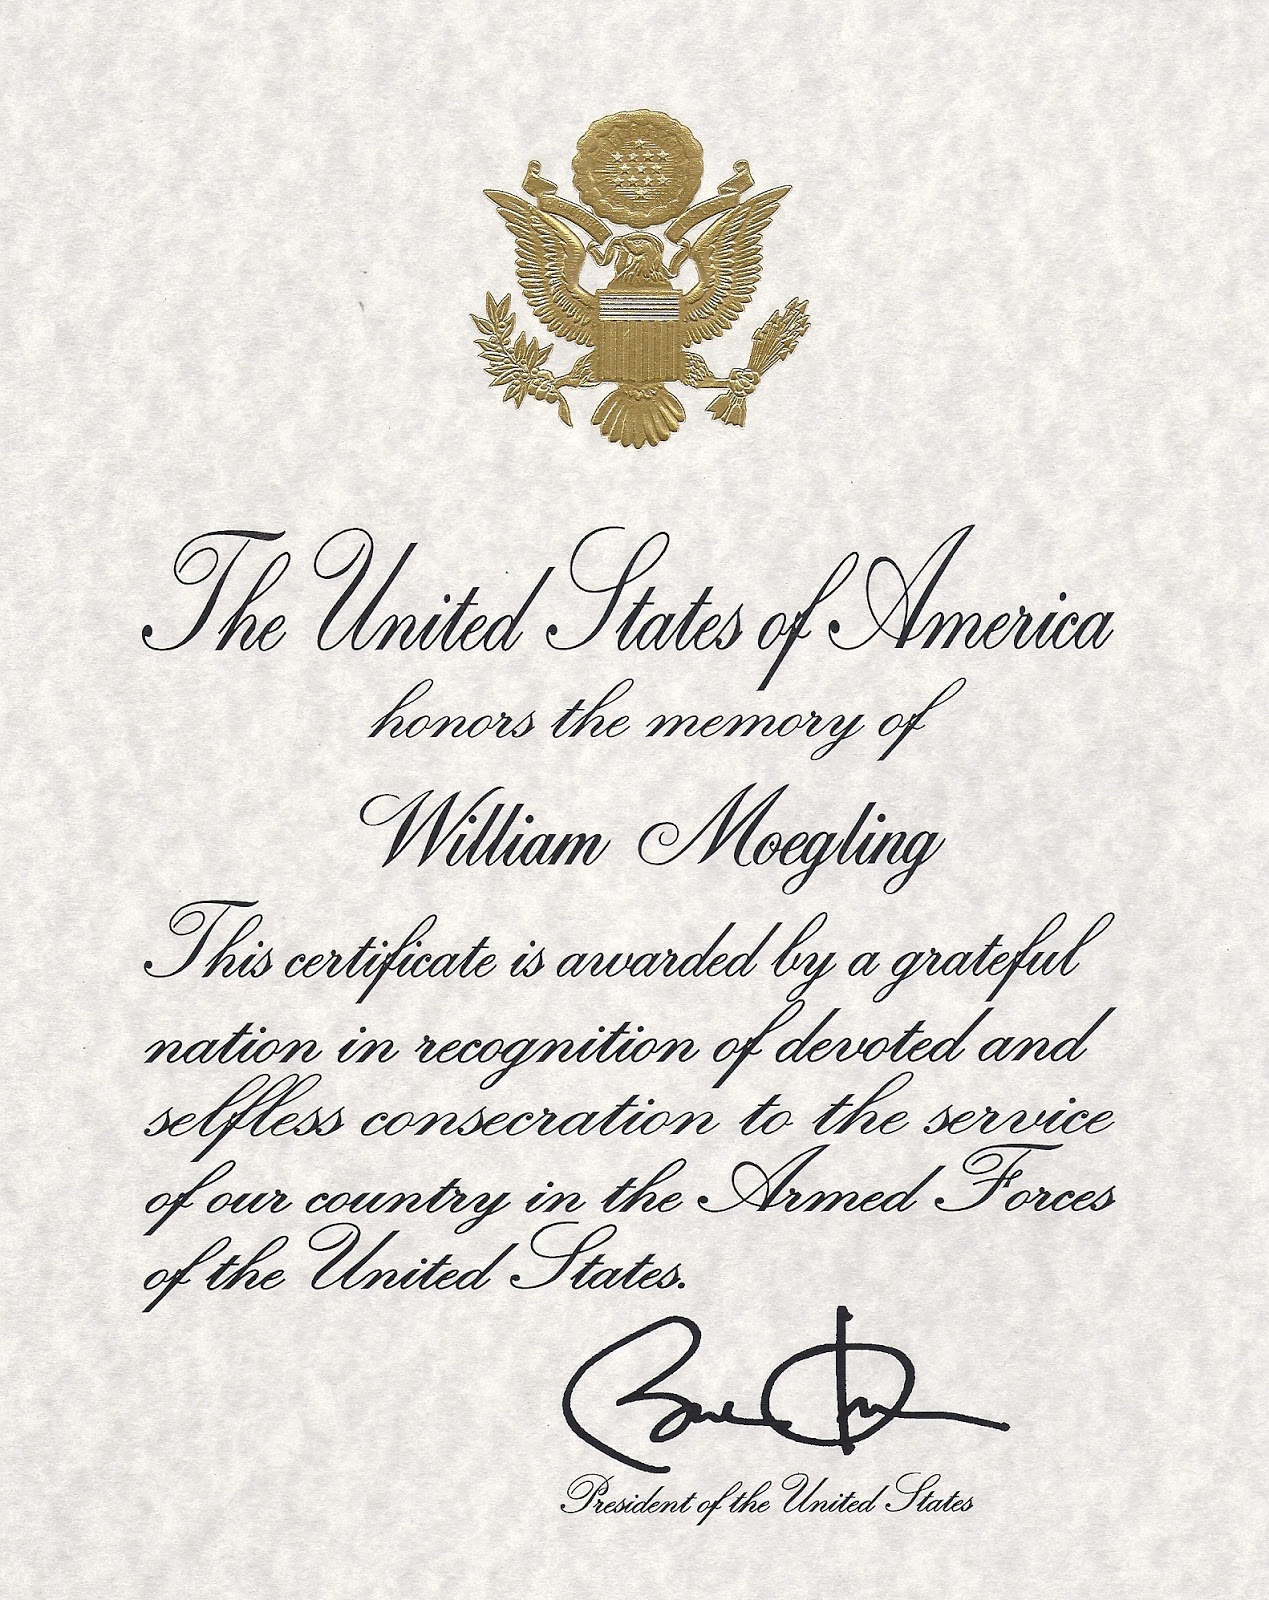 Ancient Geek Fumes Corporal William Moegling Awarded A Presidential